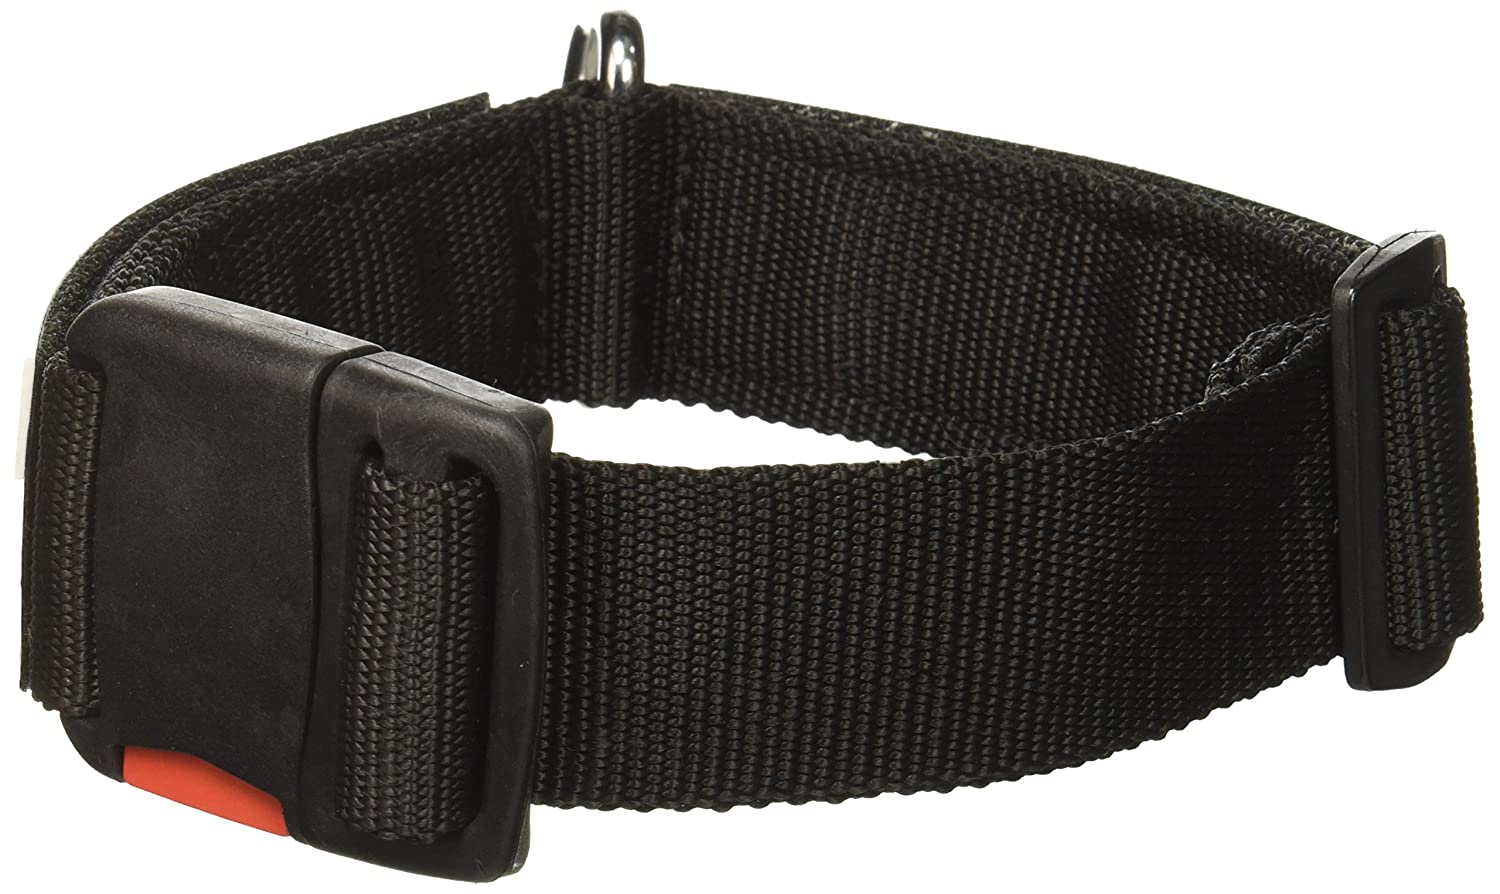 Dean and Tyler Patch Collar, Nylon Dog Collar with Working Dog DO NOT PET Patches Black Size  Small Fits Neck 18-Inch to 21-Inch